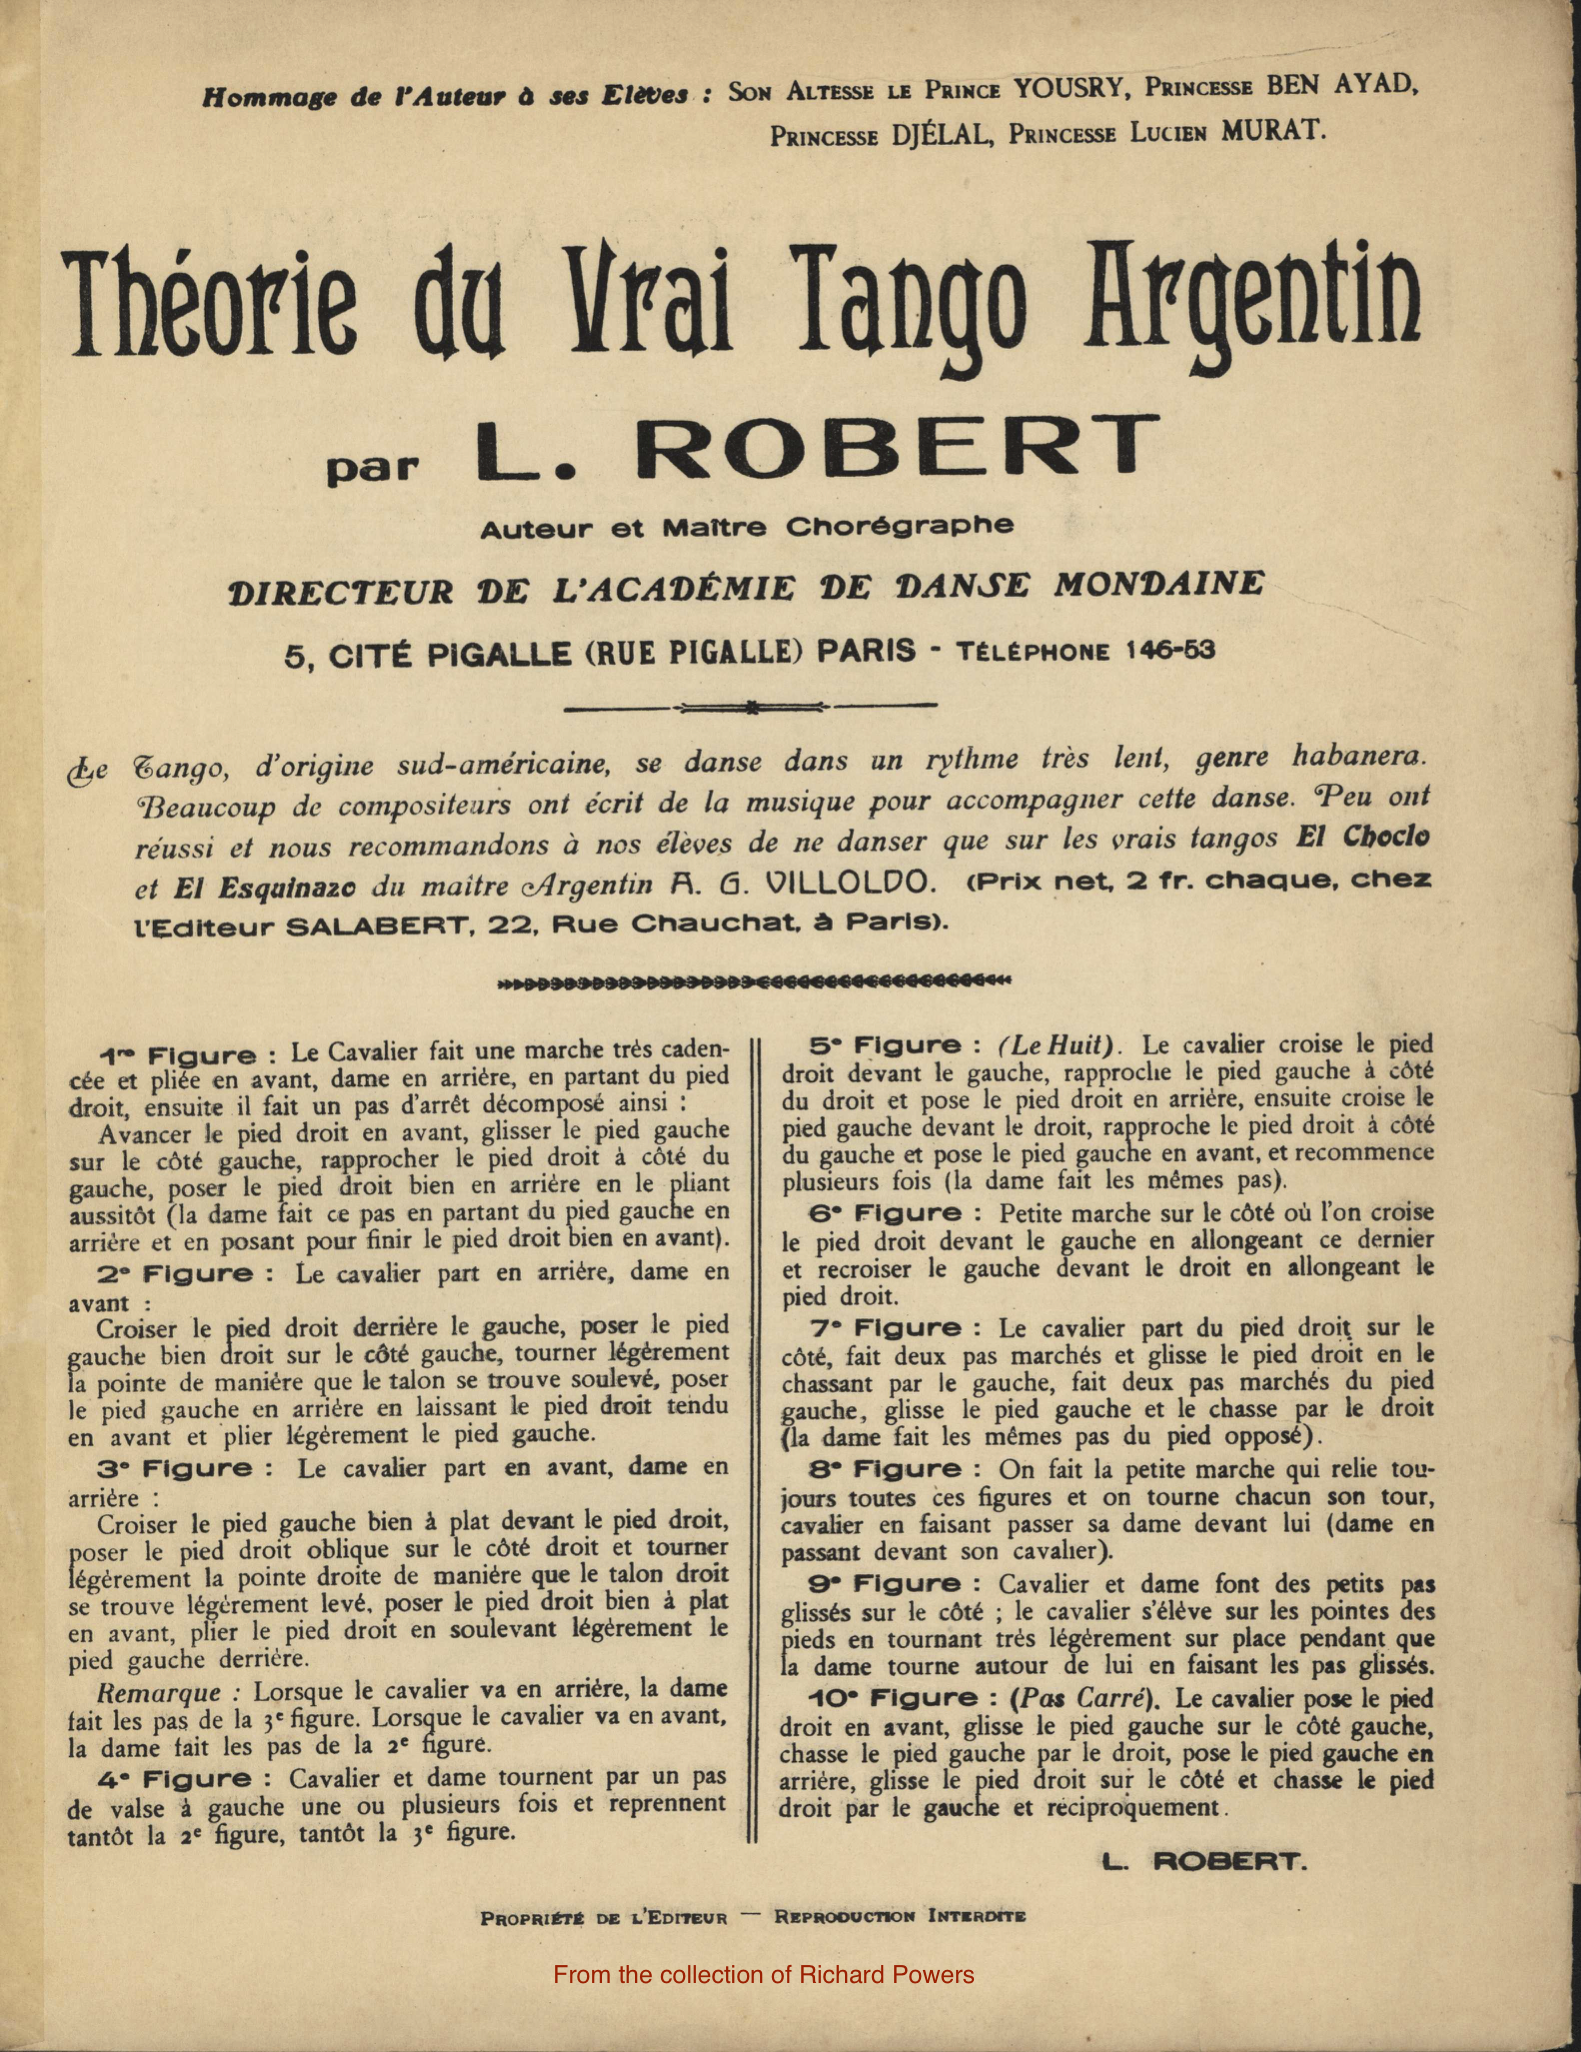 Library Of Dance Early Tango Argentine Steps Diagram Look At This Le Vrai Argentin L Robert Thorie Du 1911 P 1